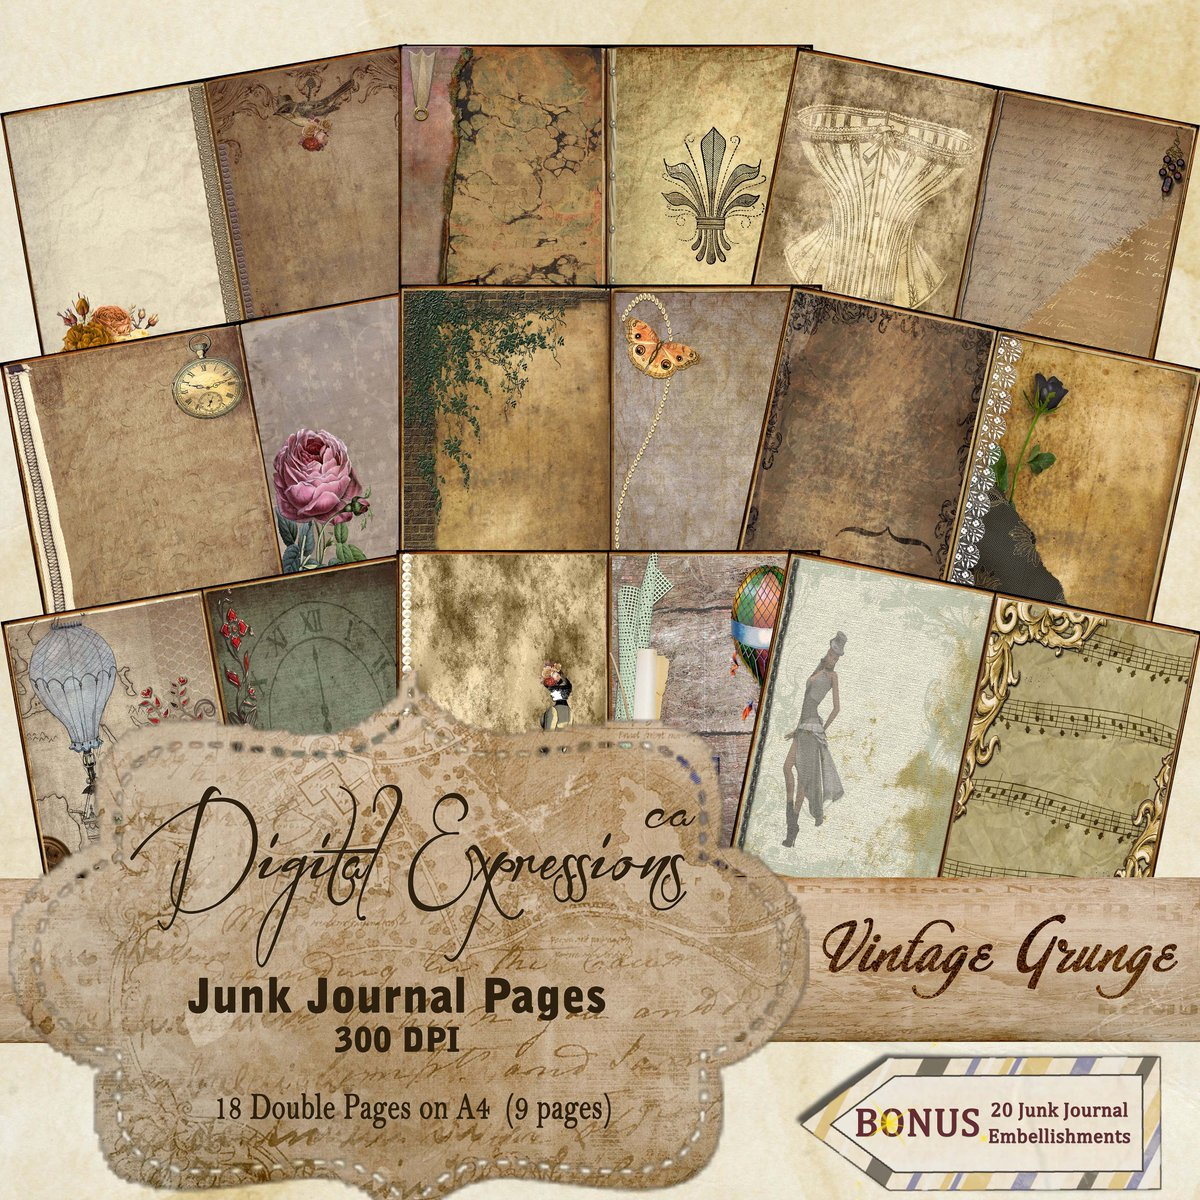 My #ETSY Shop https://t.co/GVpP2ZCd21  #JunkJournal #planner #ErinCondren #stickers #printable #scrapbooking #Digital #Paper packs #Bible #teacards #tags #Washitape #Steampunk -Trying to raise $25,000 for #Charity! Check for #Sale  60-70% off #Commercial Use TY for your support https://t.co/qpg9ZGaaof